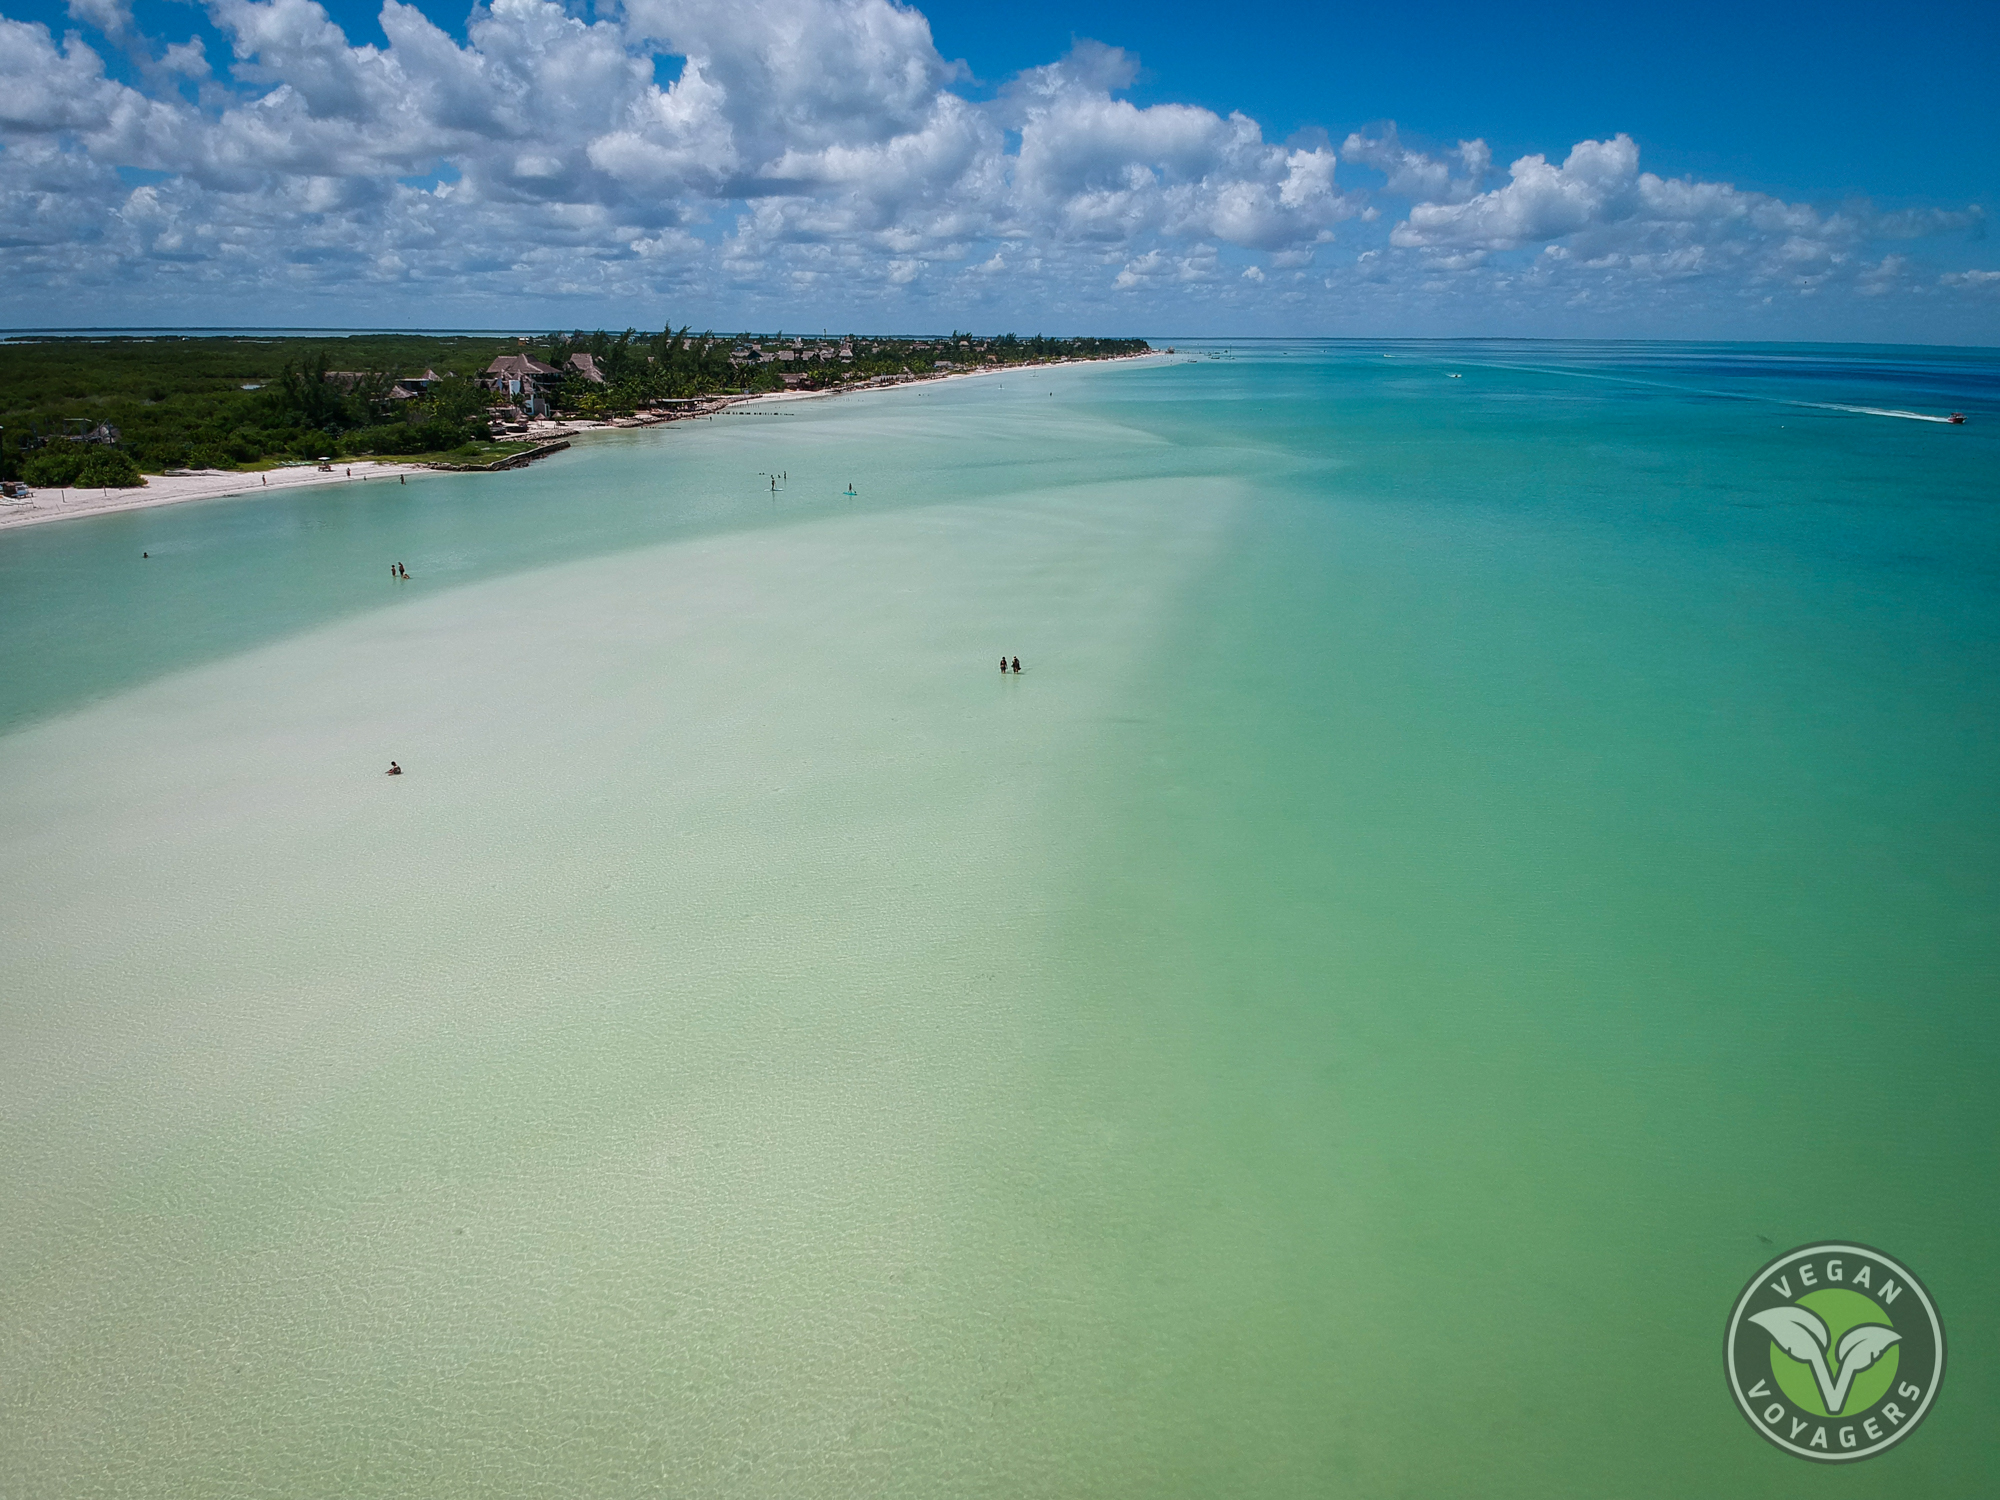 The sand bar   Tips for Visiting Isla Holbox, Mexico